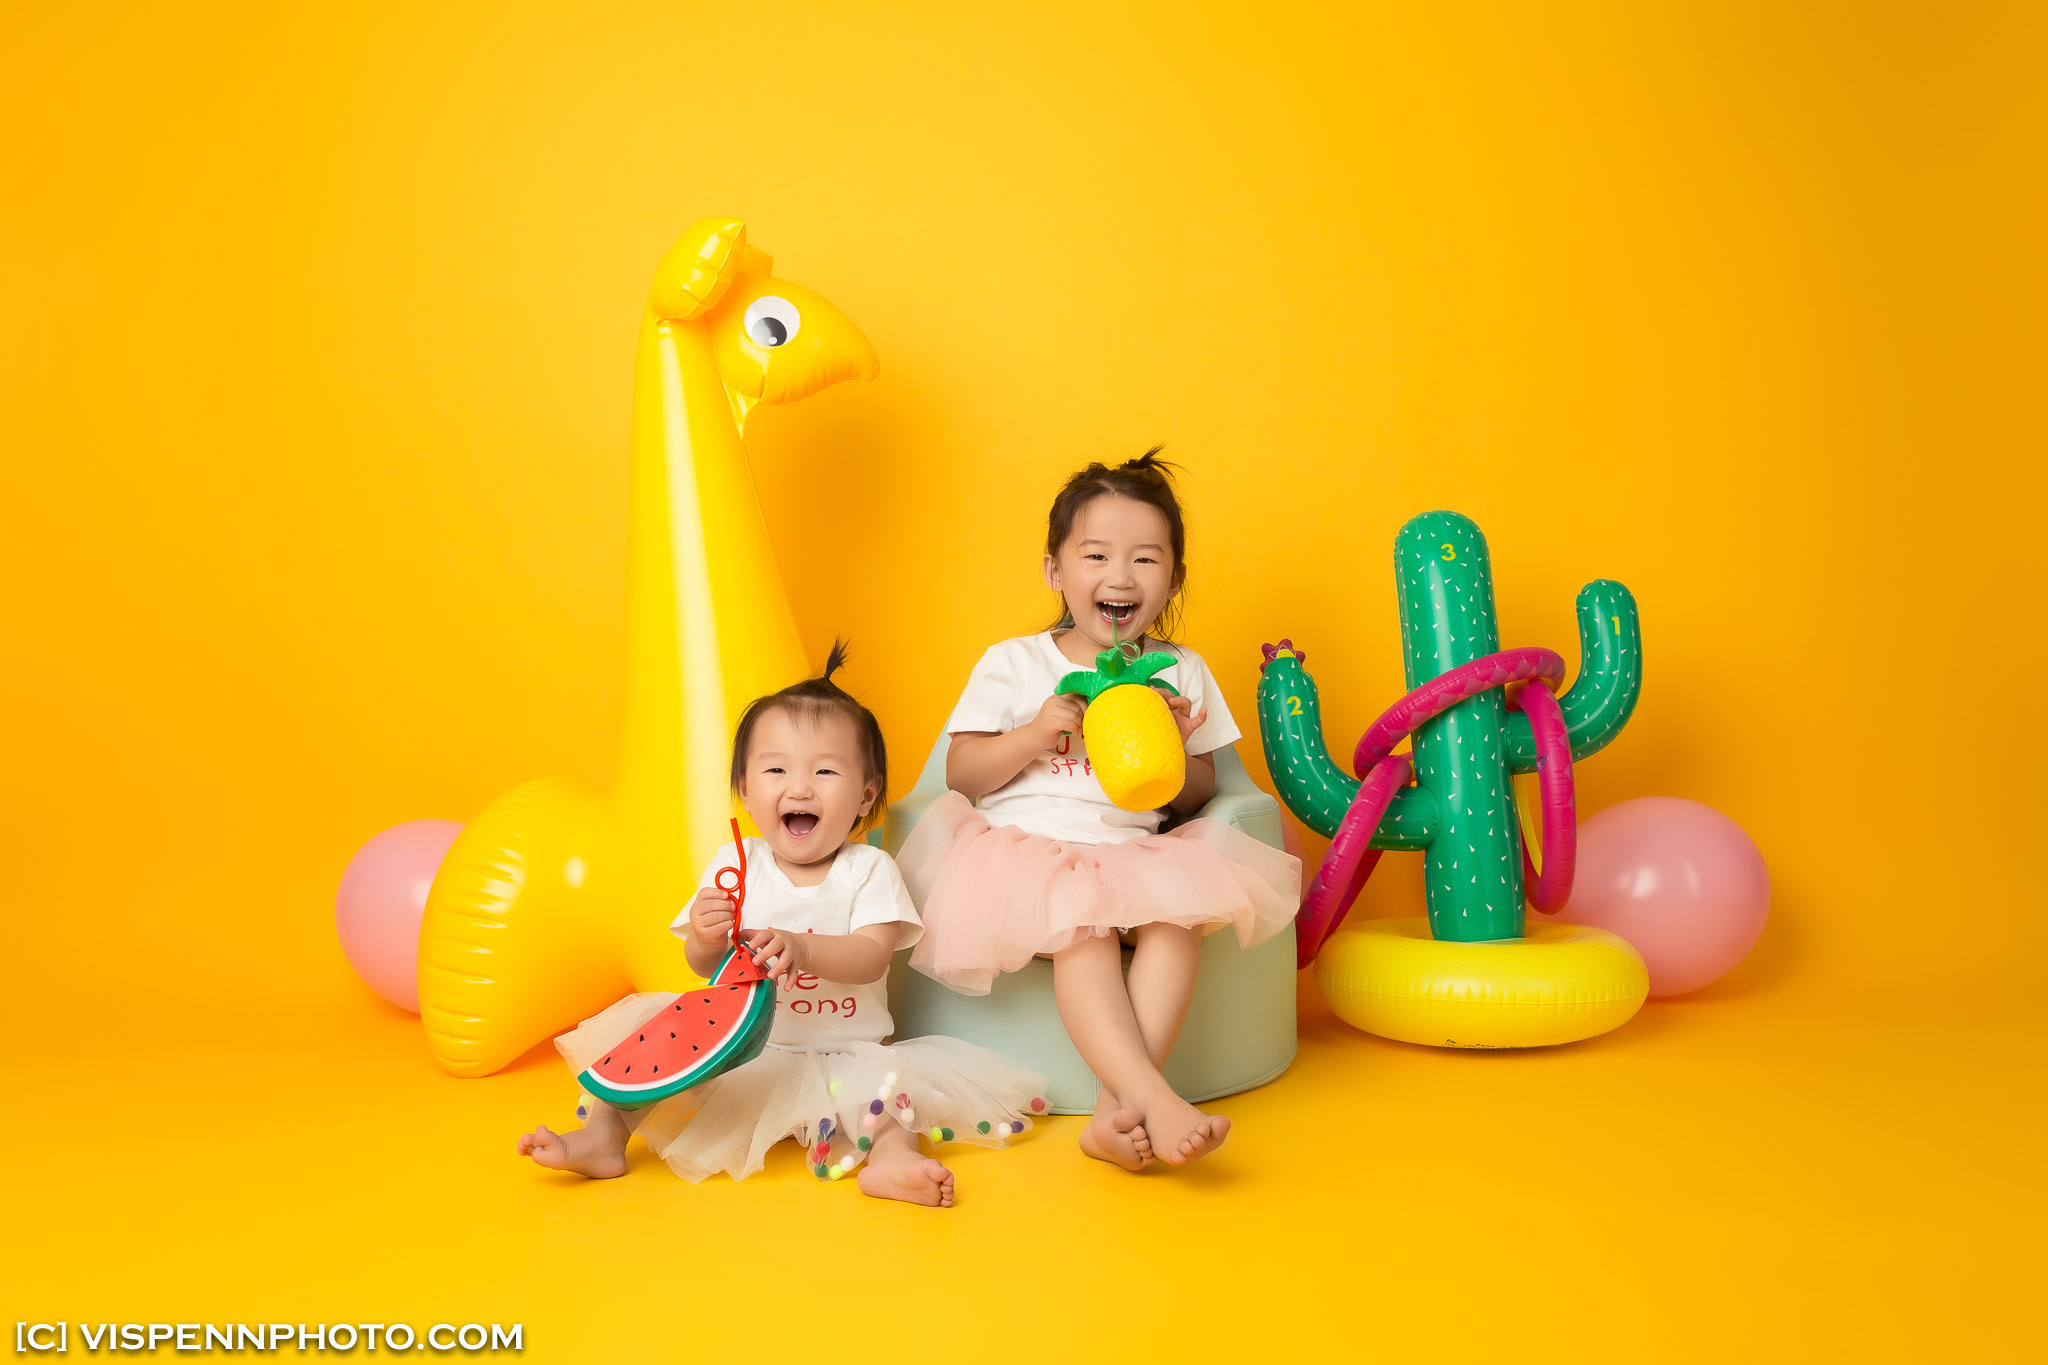 Melbourne Newborn Baby Family Photo BaoBao VISPENN 墨尔本 儿童 宝宝 百天照 满月照 孕妇照 全家福 KIDS VISPENN RitaLin 2048